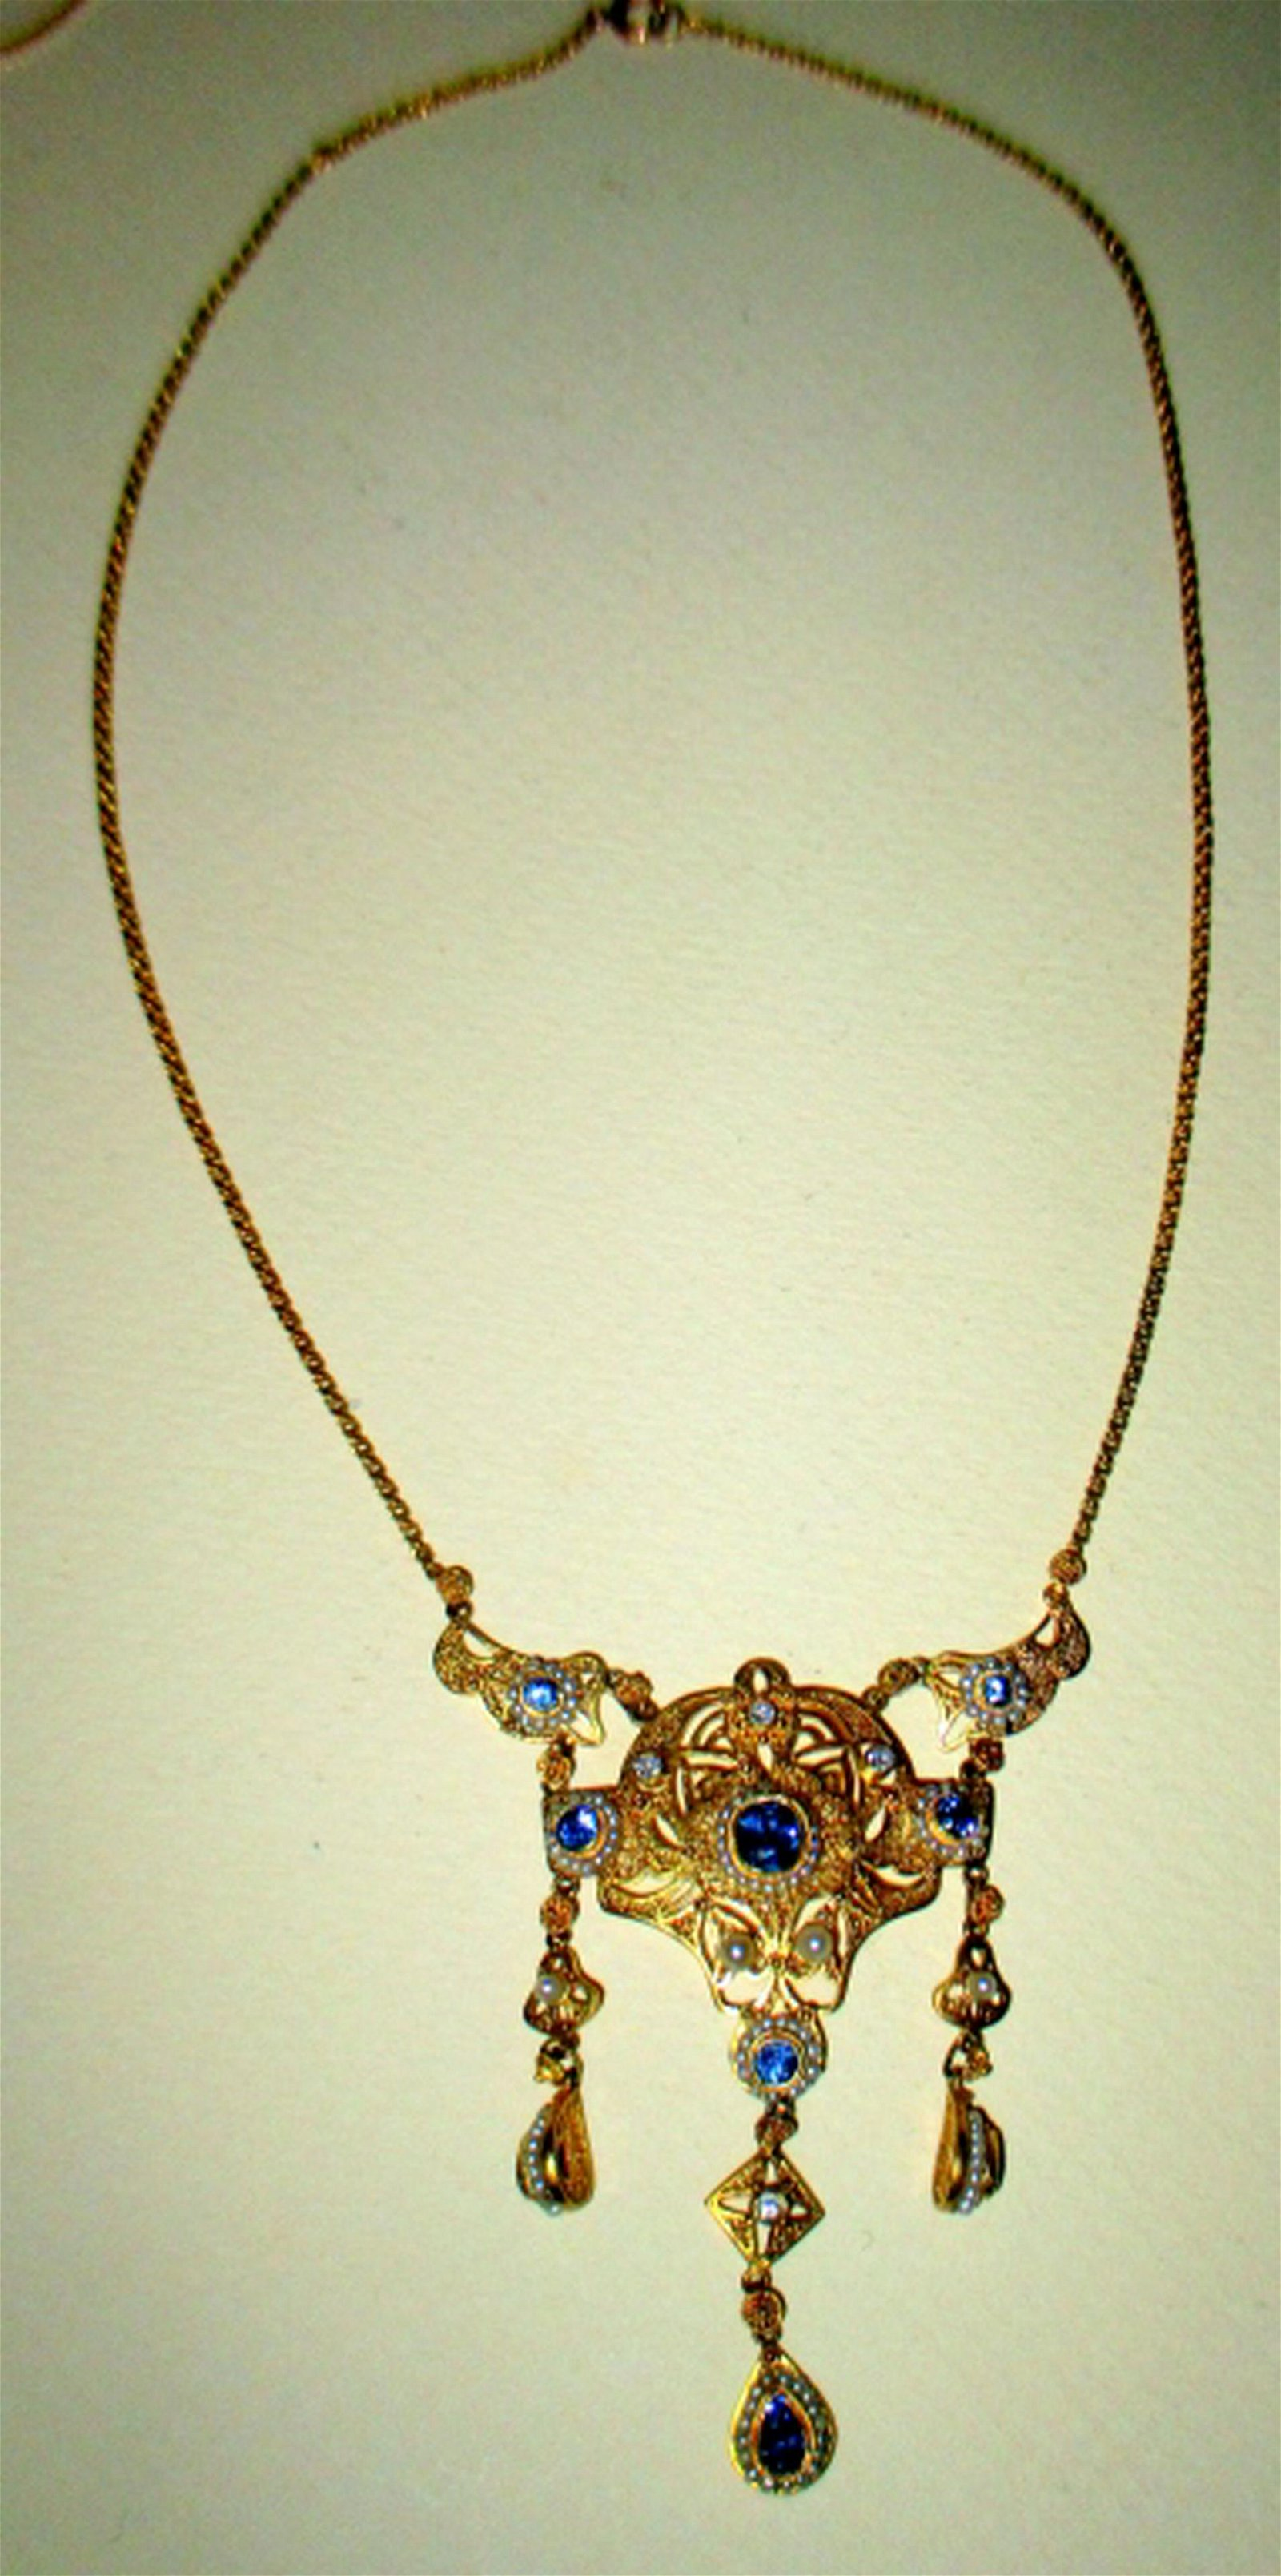 Vintage Edwardian 14K Gold Necklace